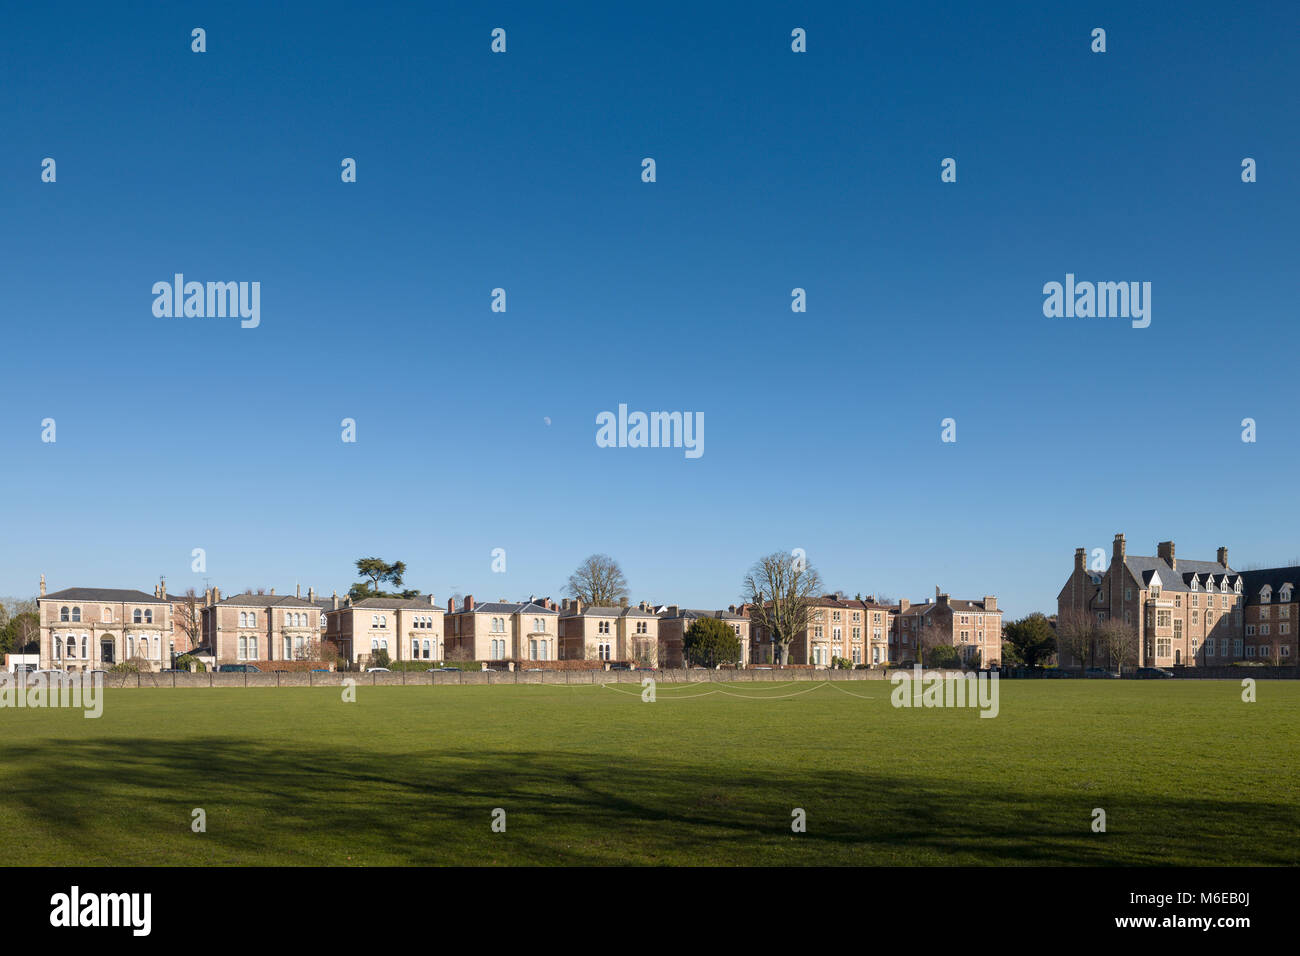 Substantial Victorian semi-detached houses in College Fields, Clifton, Bristol, UK viewed across Clifton College - Stock Image